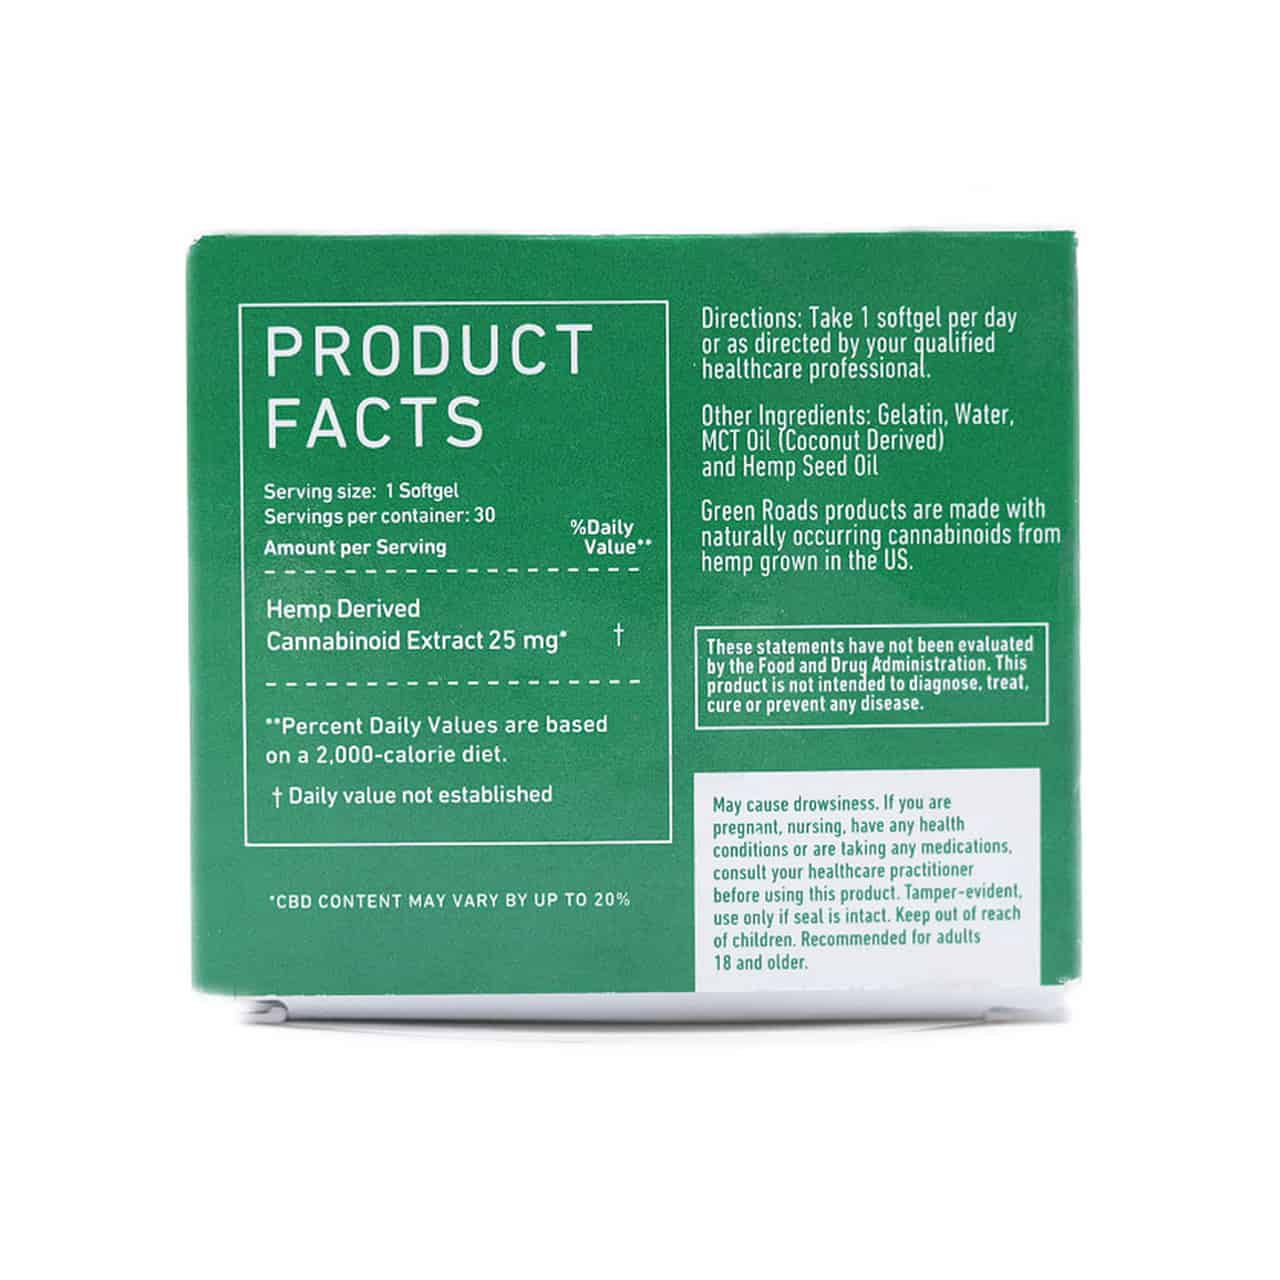 Green Roads CBD capsules - Product Facts